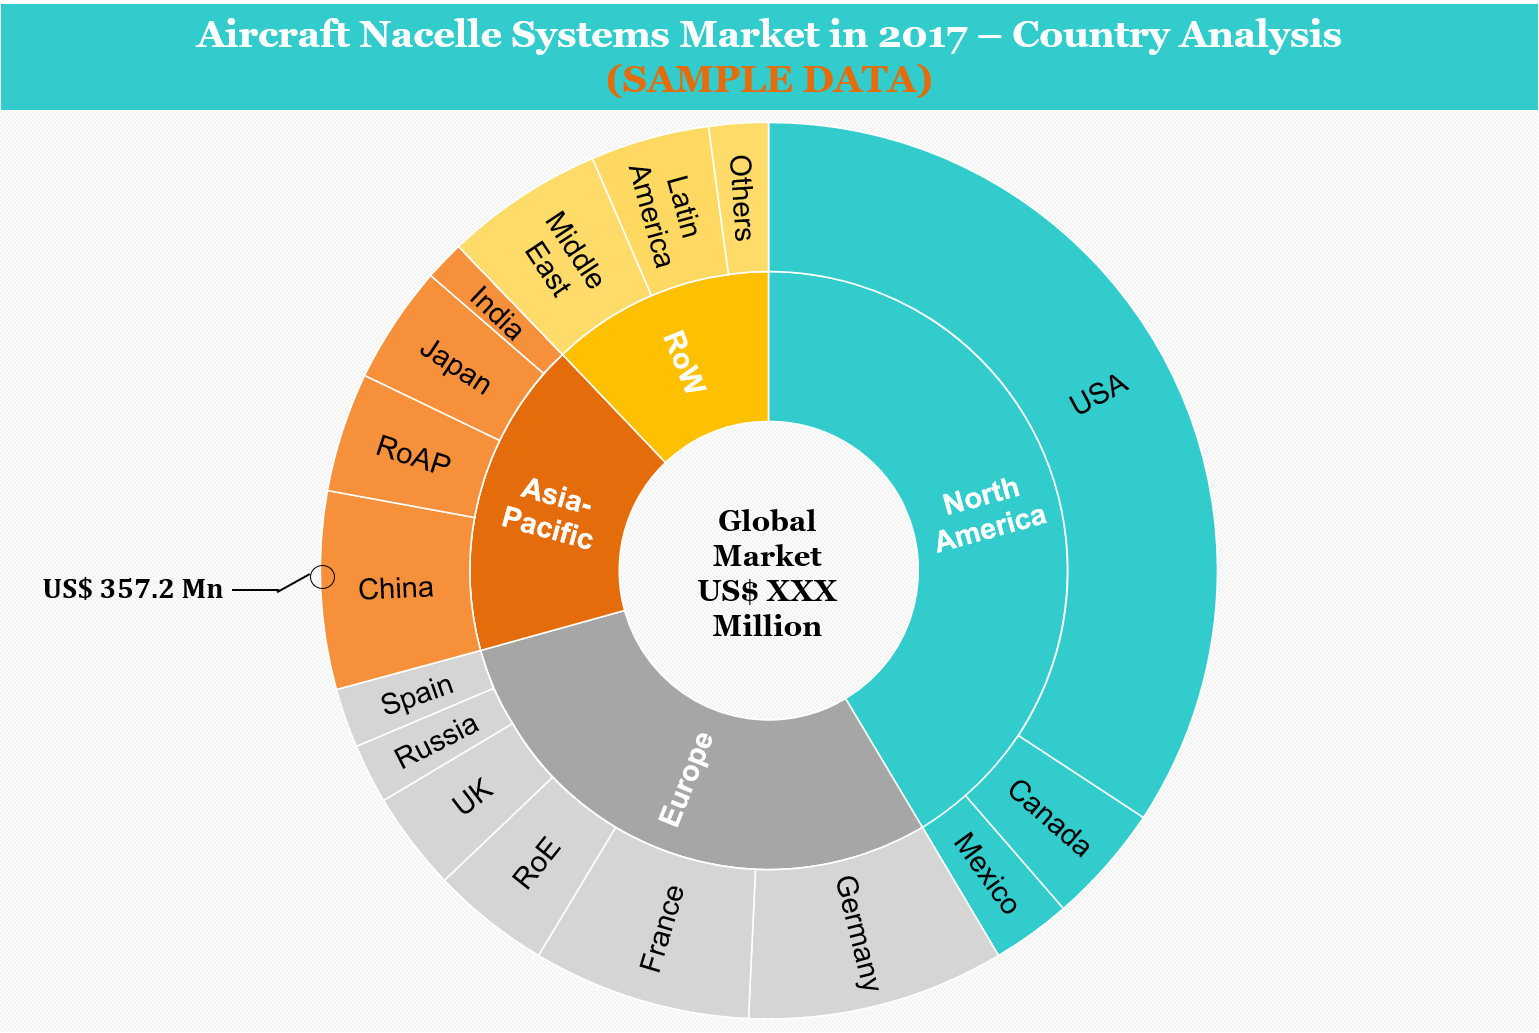 Aircraft Nacelle Systems Market - Country Analysis